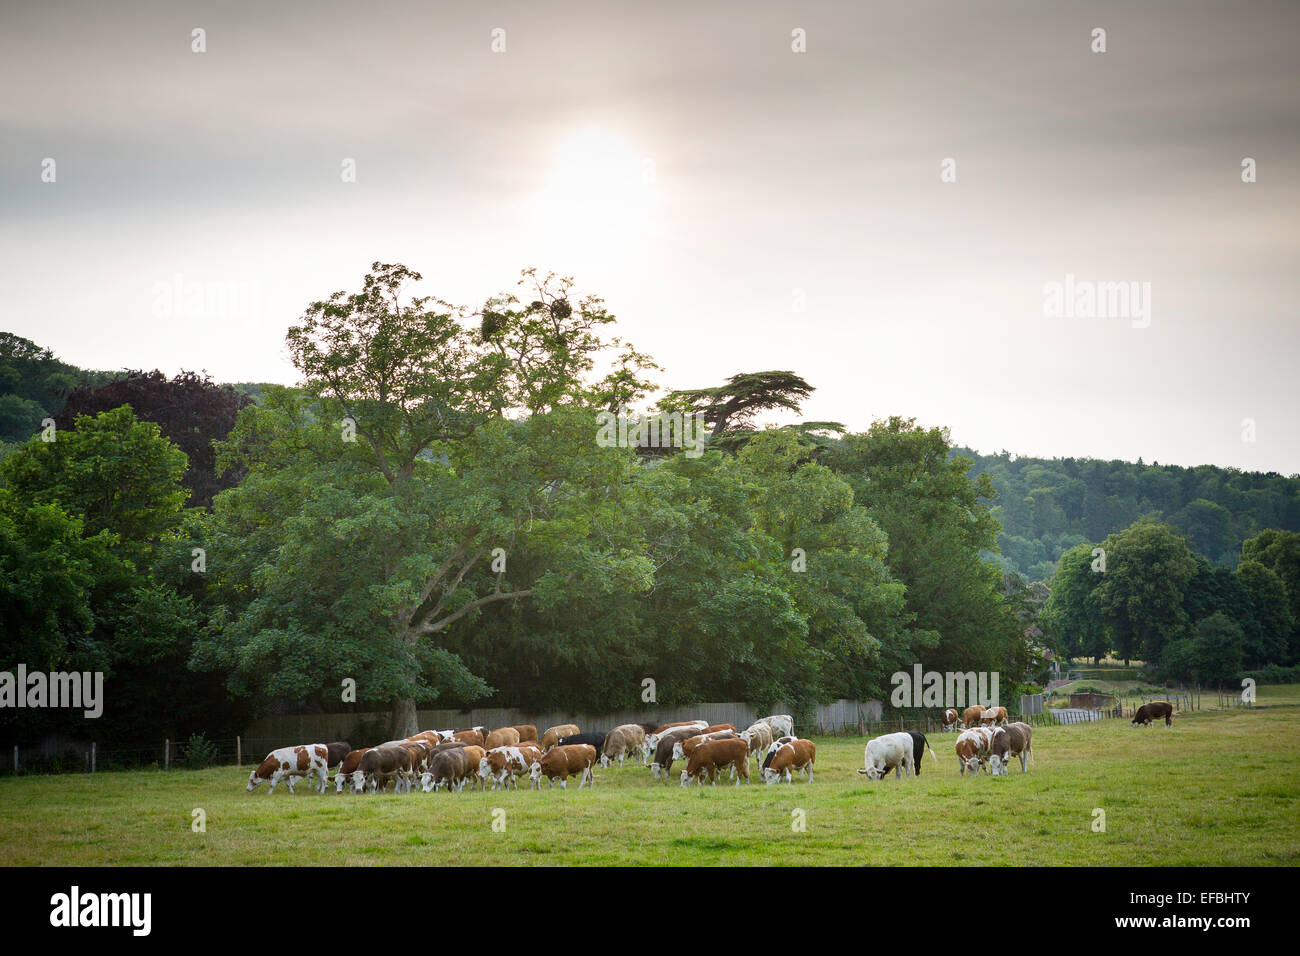 Landscape view with herd of cows grazing in rural summer meadow, Oxfordshire, England - Stock Image